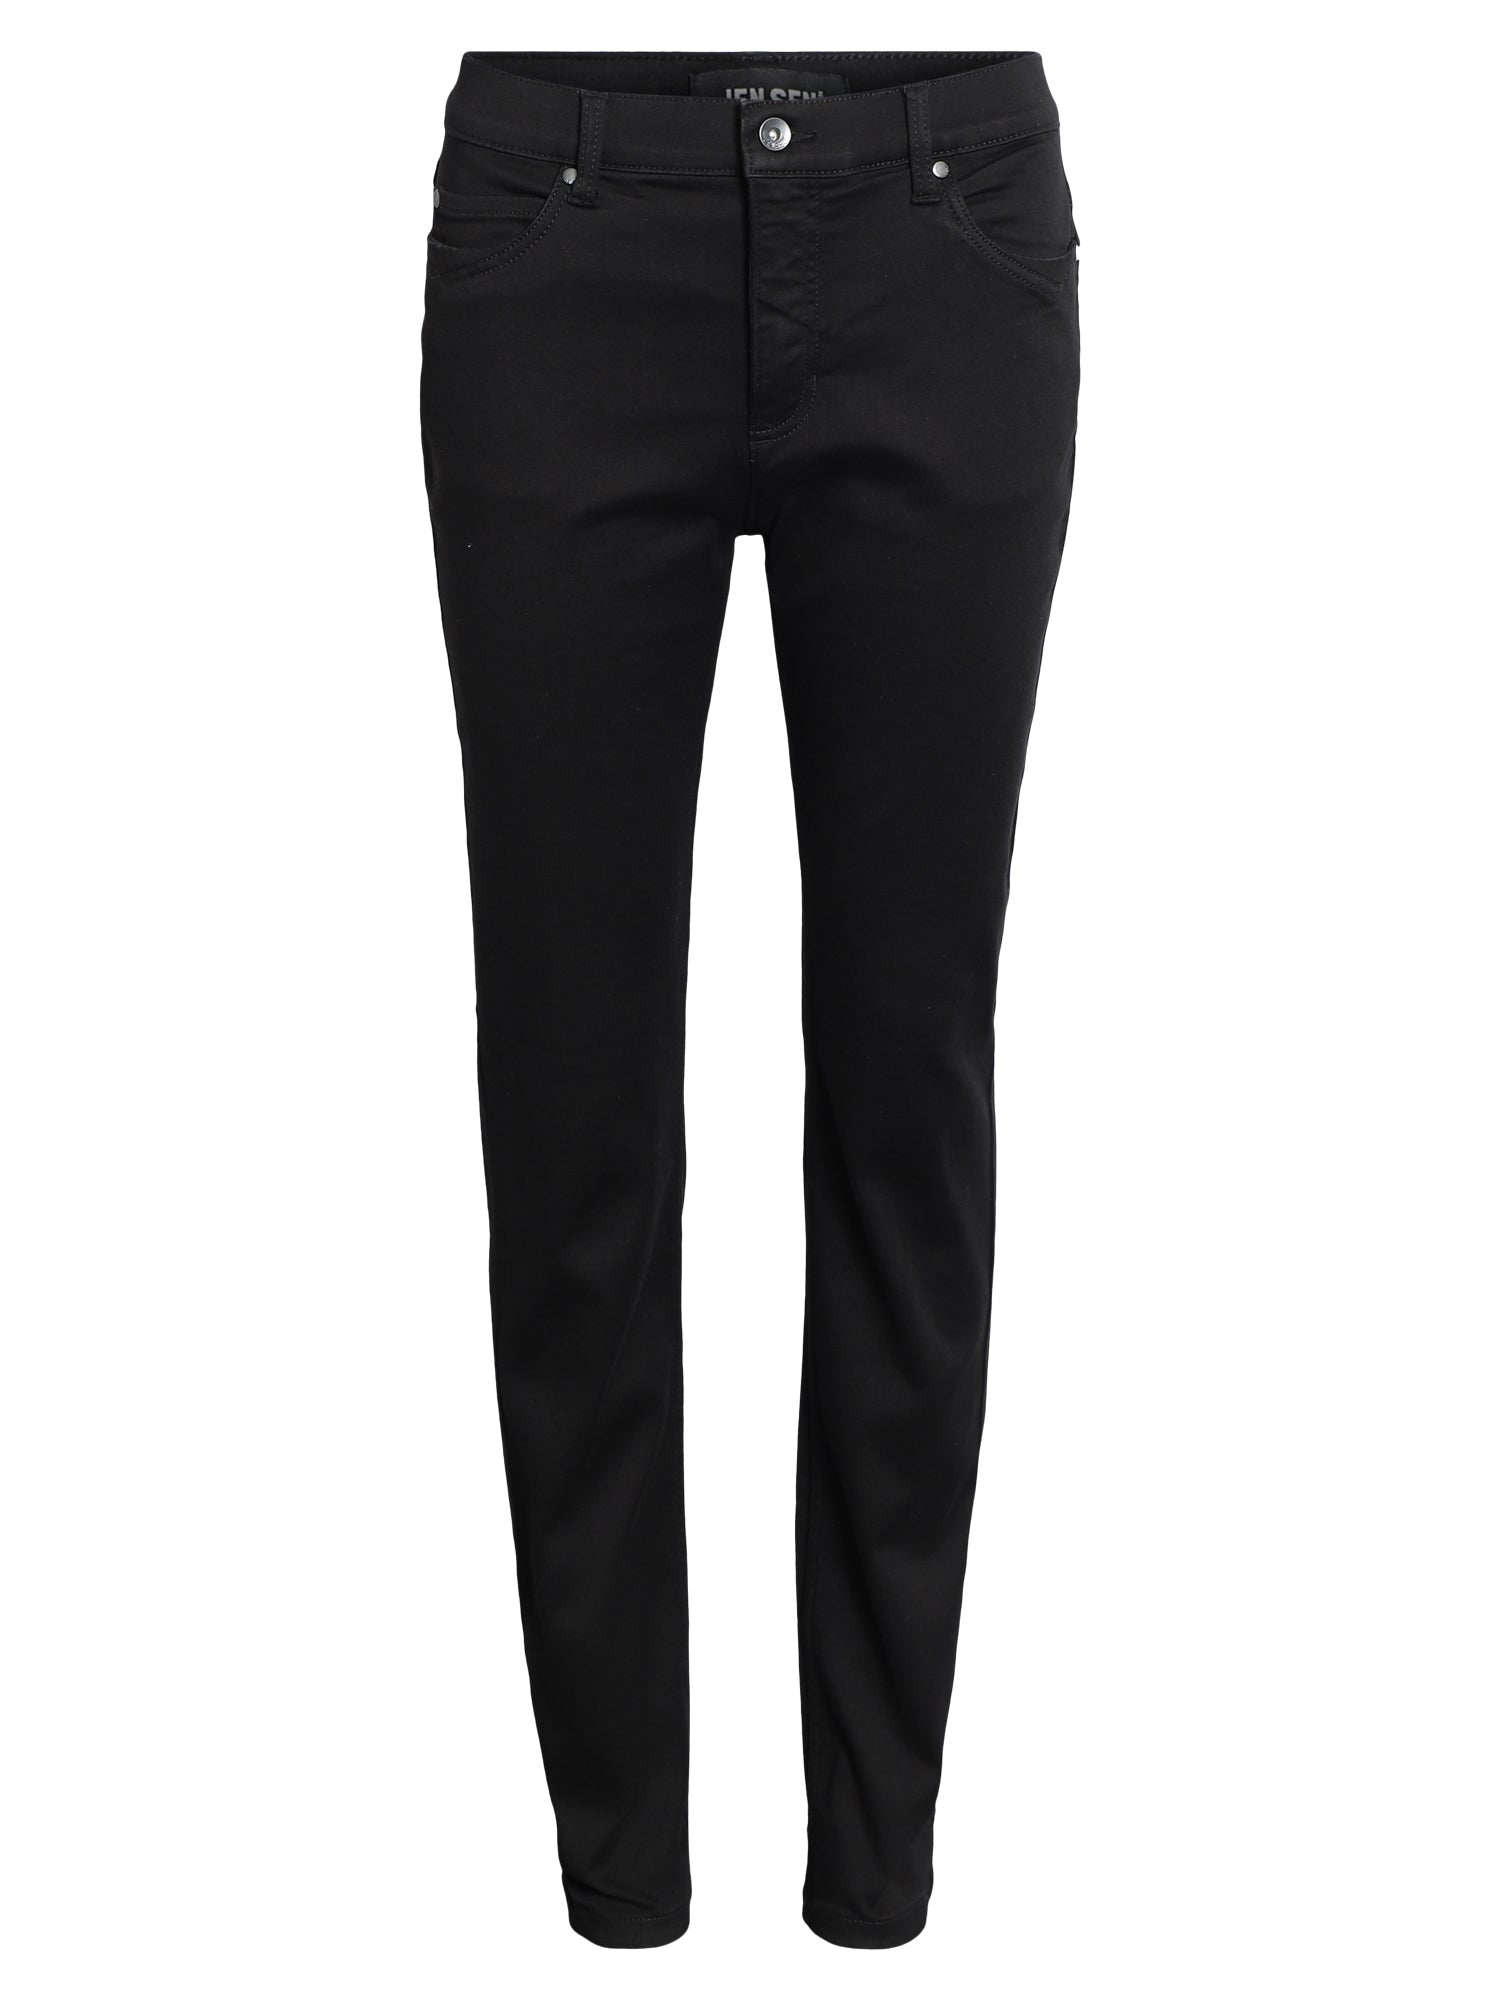 Image of   Jeans Joyce - Black tone in tone